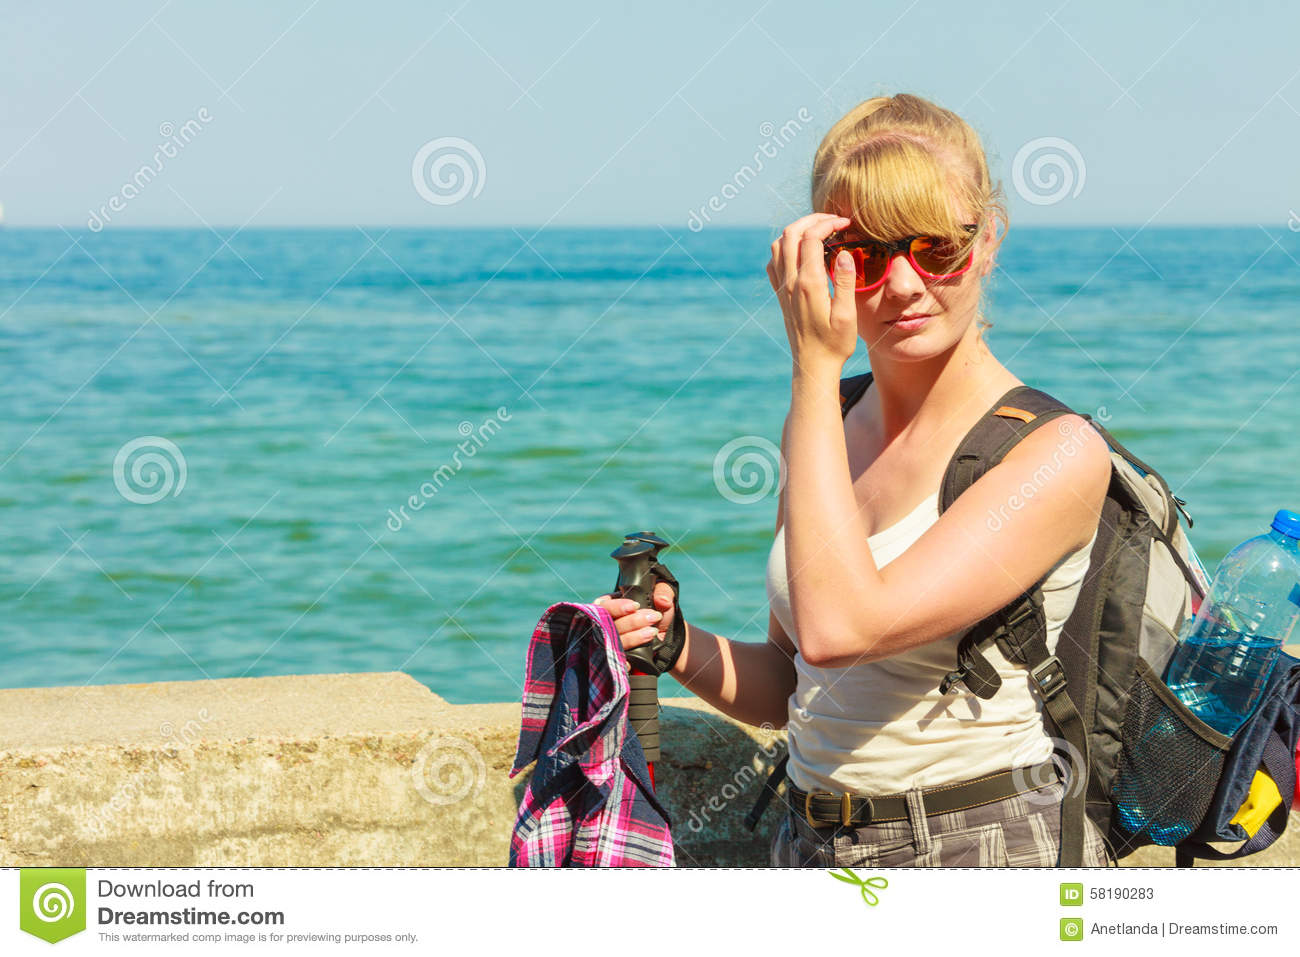 Young Woman With Backpack Hiking On Sea Coast Stock Image - Image of ... 9ca6f22bb7d86